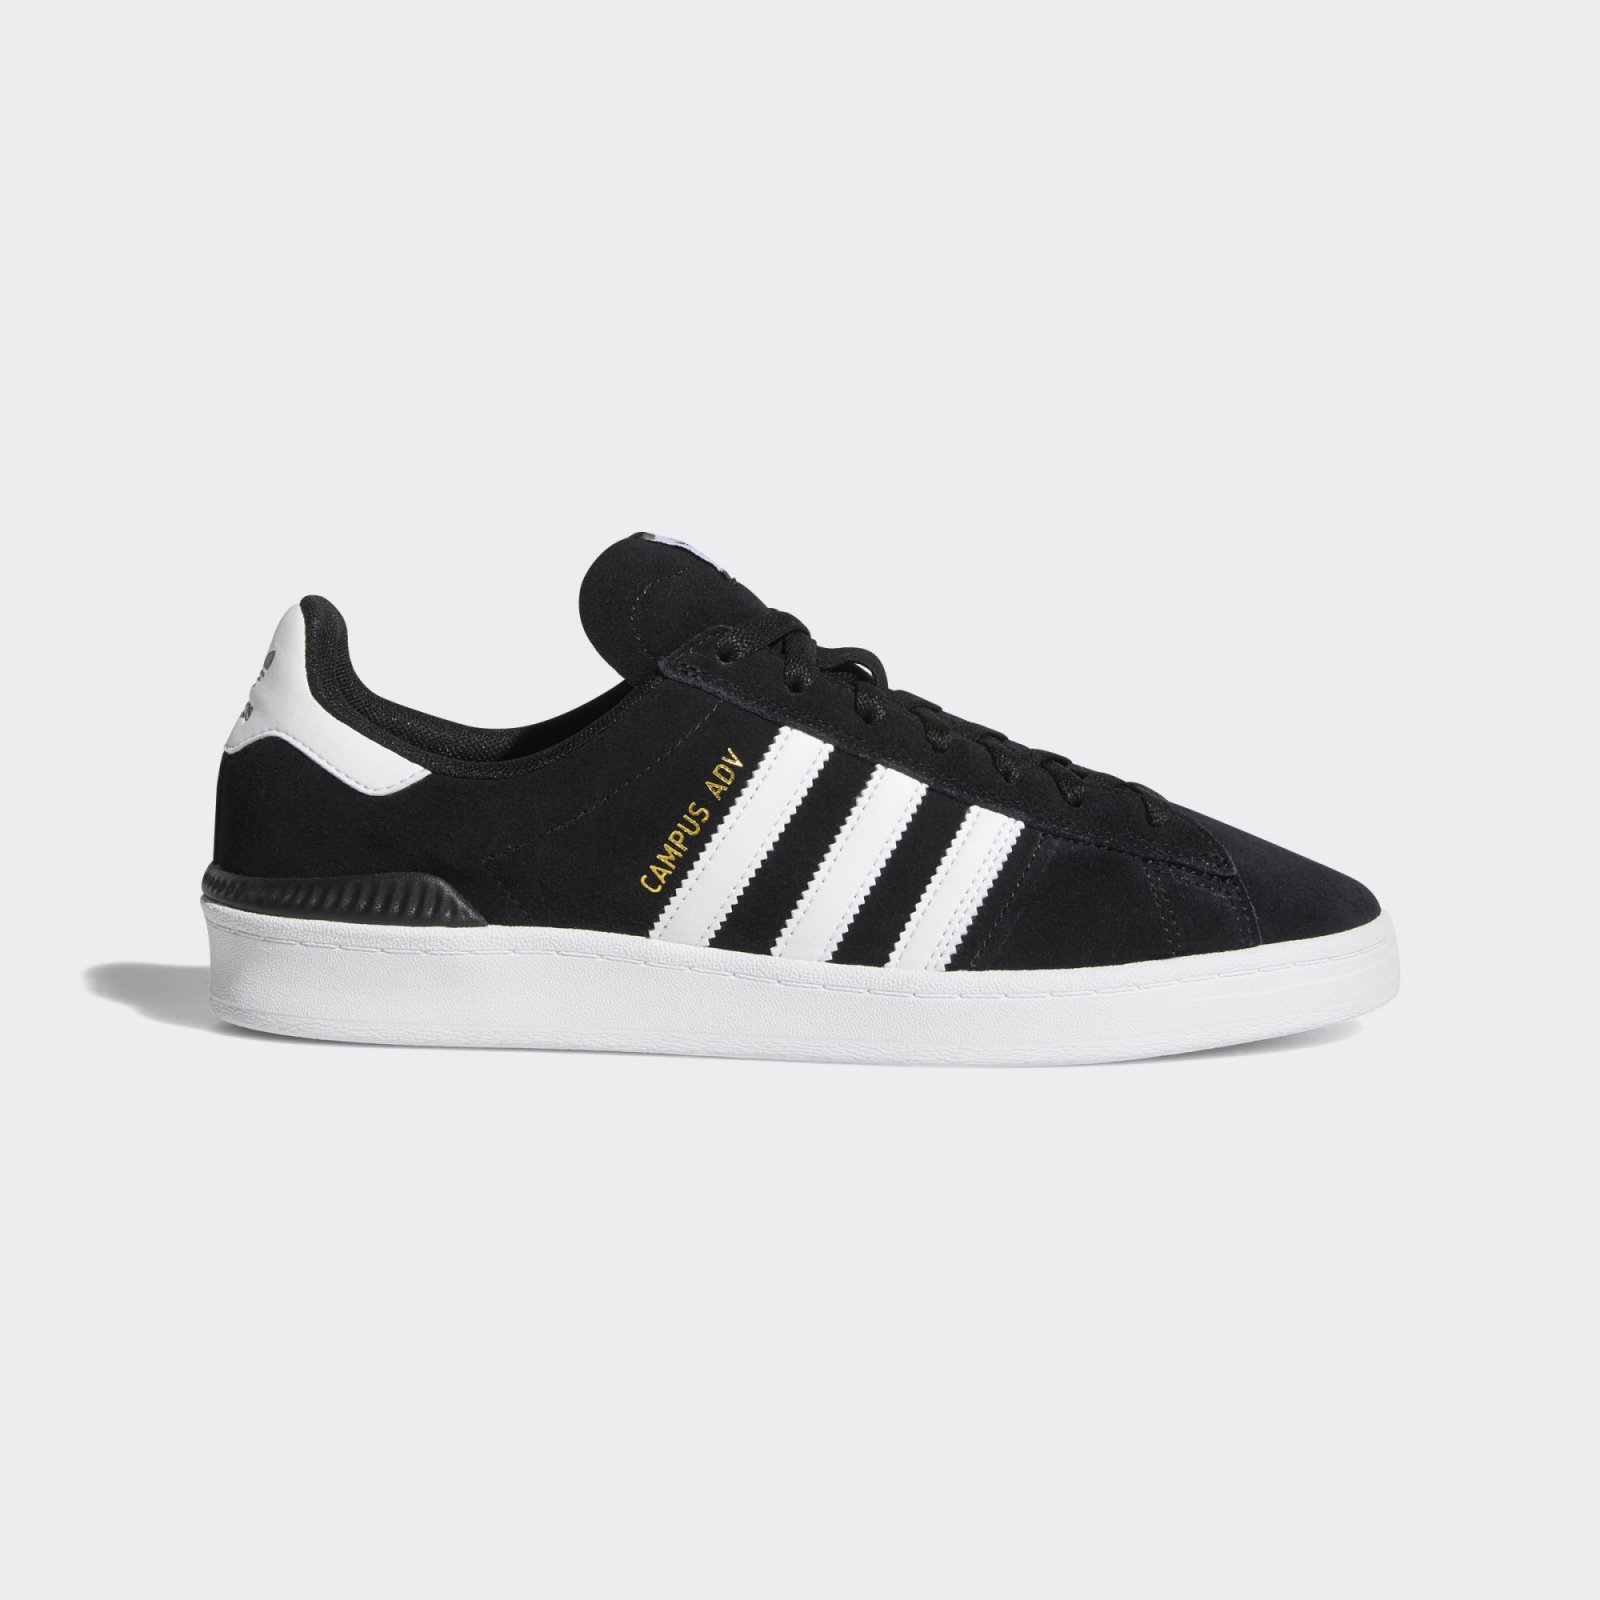 Adidas Campus ADV Core Black / Cloud White / Cloud White